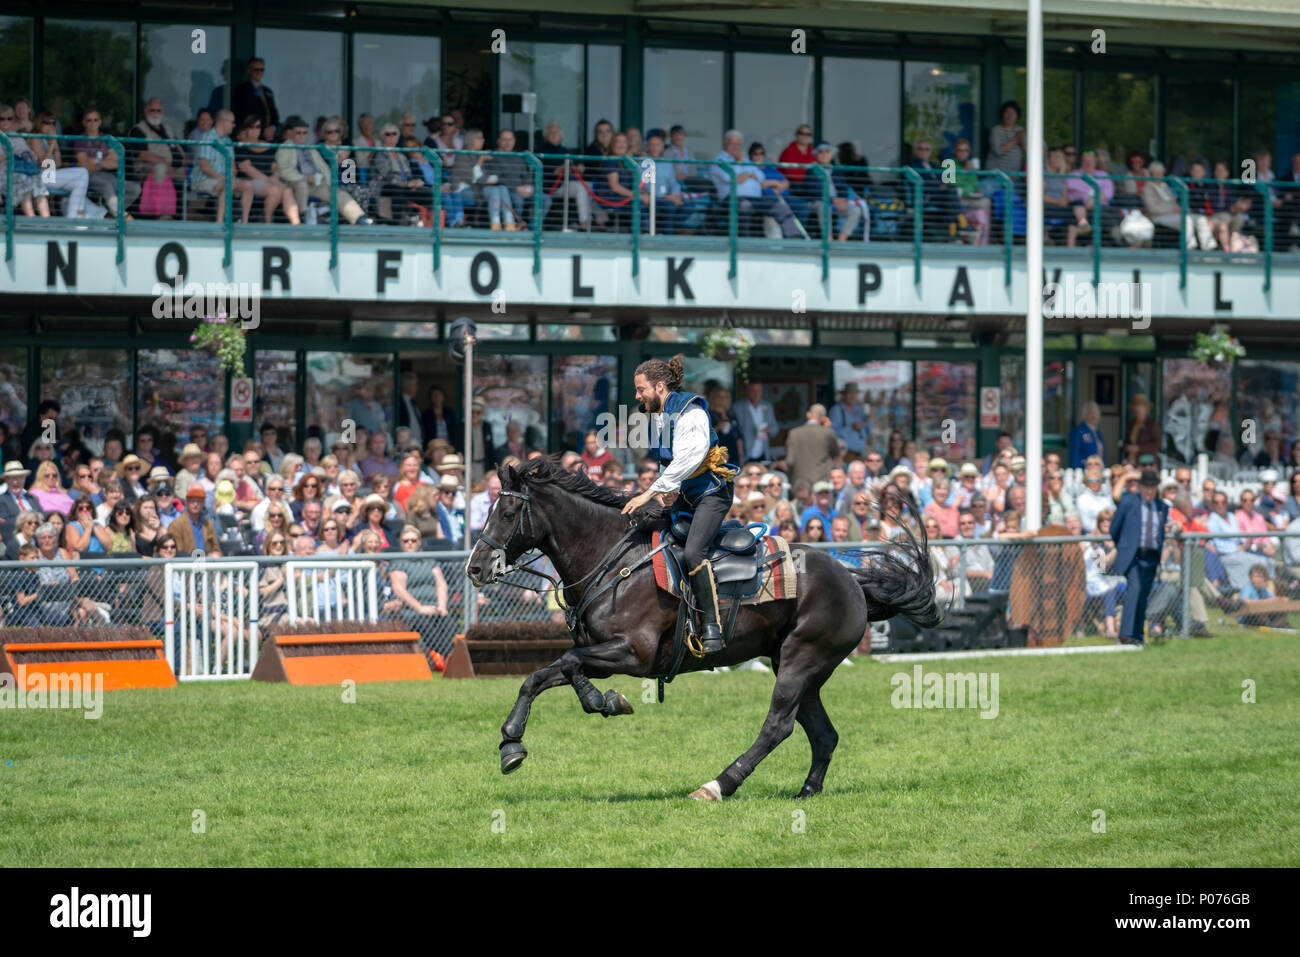 While riding a horse, a rider from the Atkinson Action Horses gallops across the showground in front of thrilled spectators during a performance at the South Of England Show in Ardingly, Sussex, UK. Stock Photo